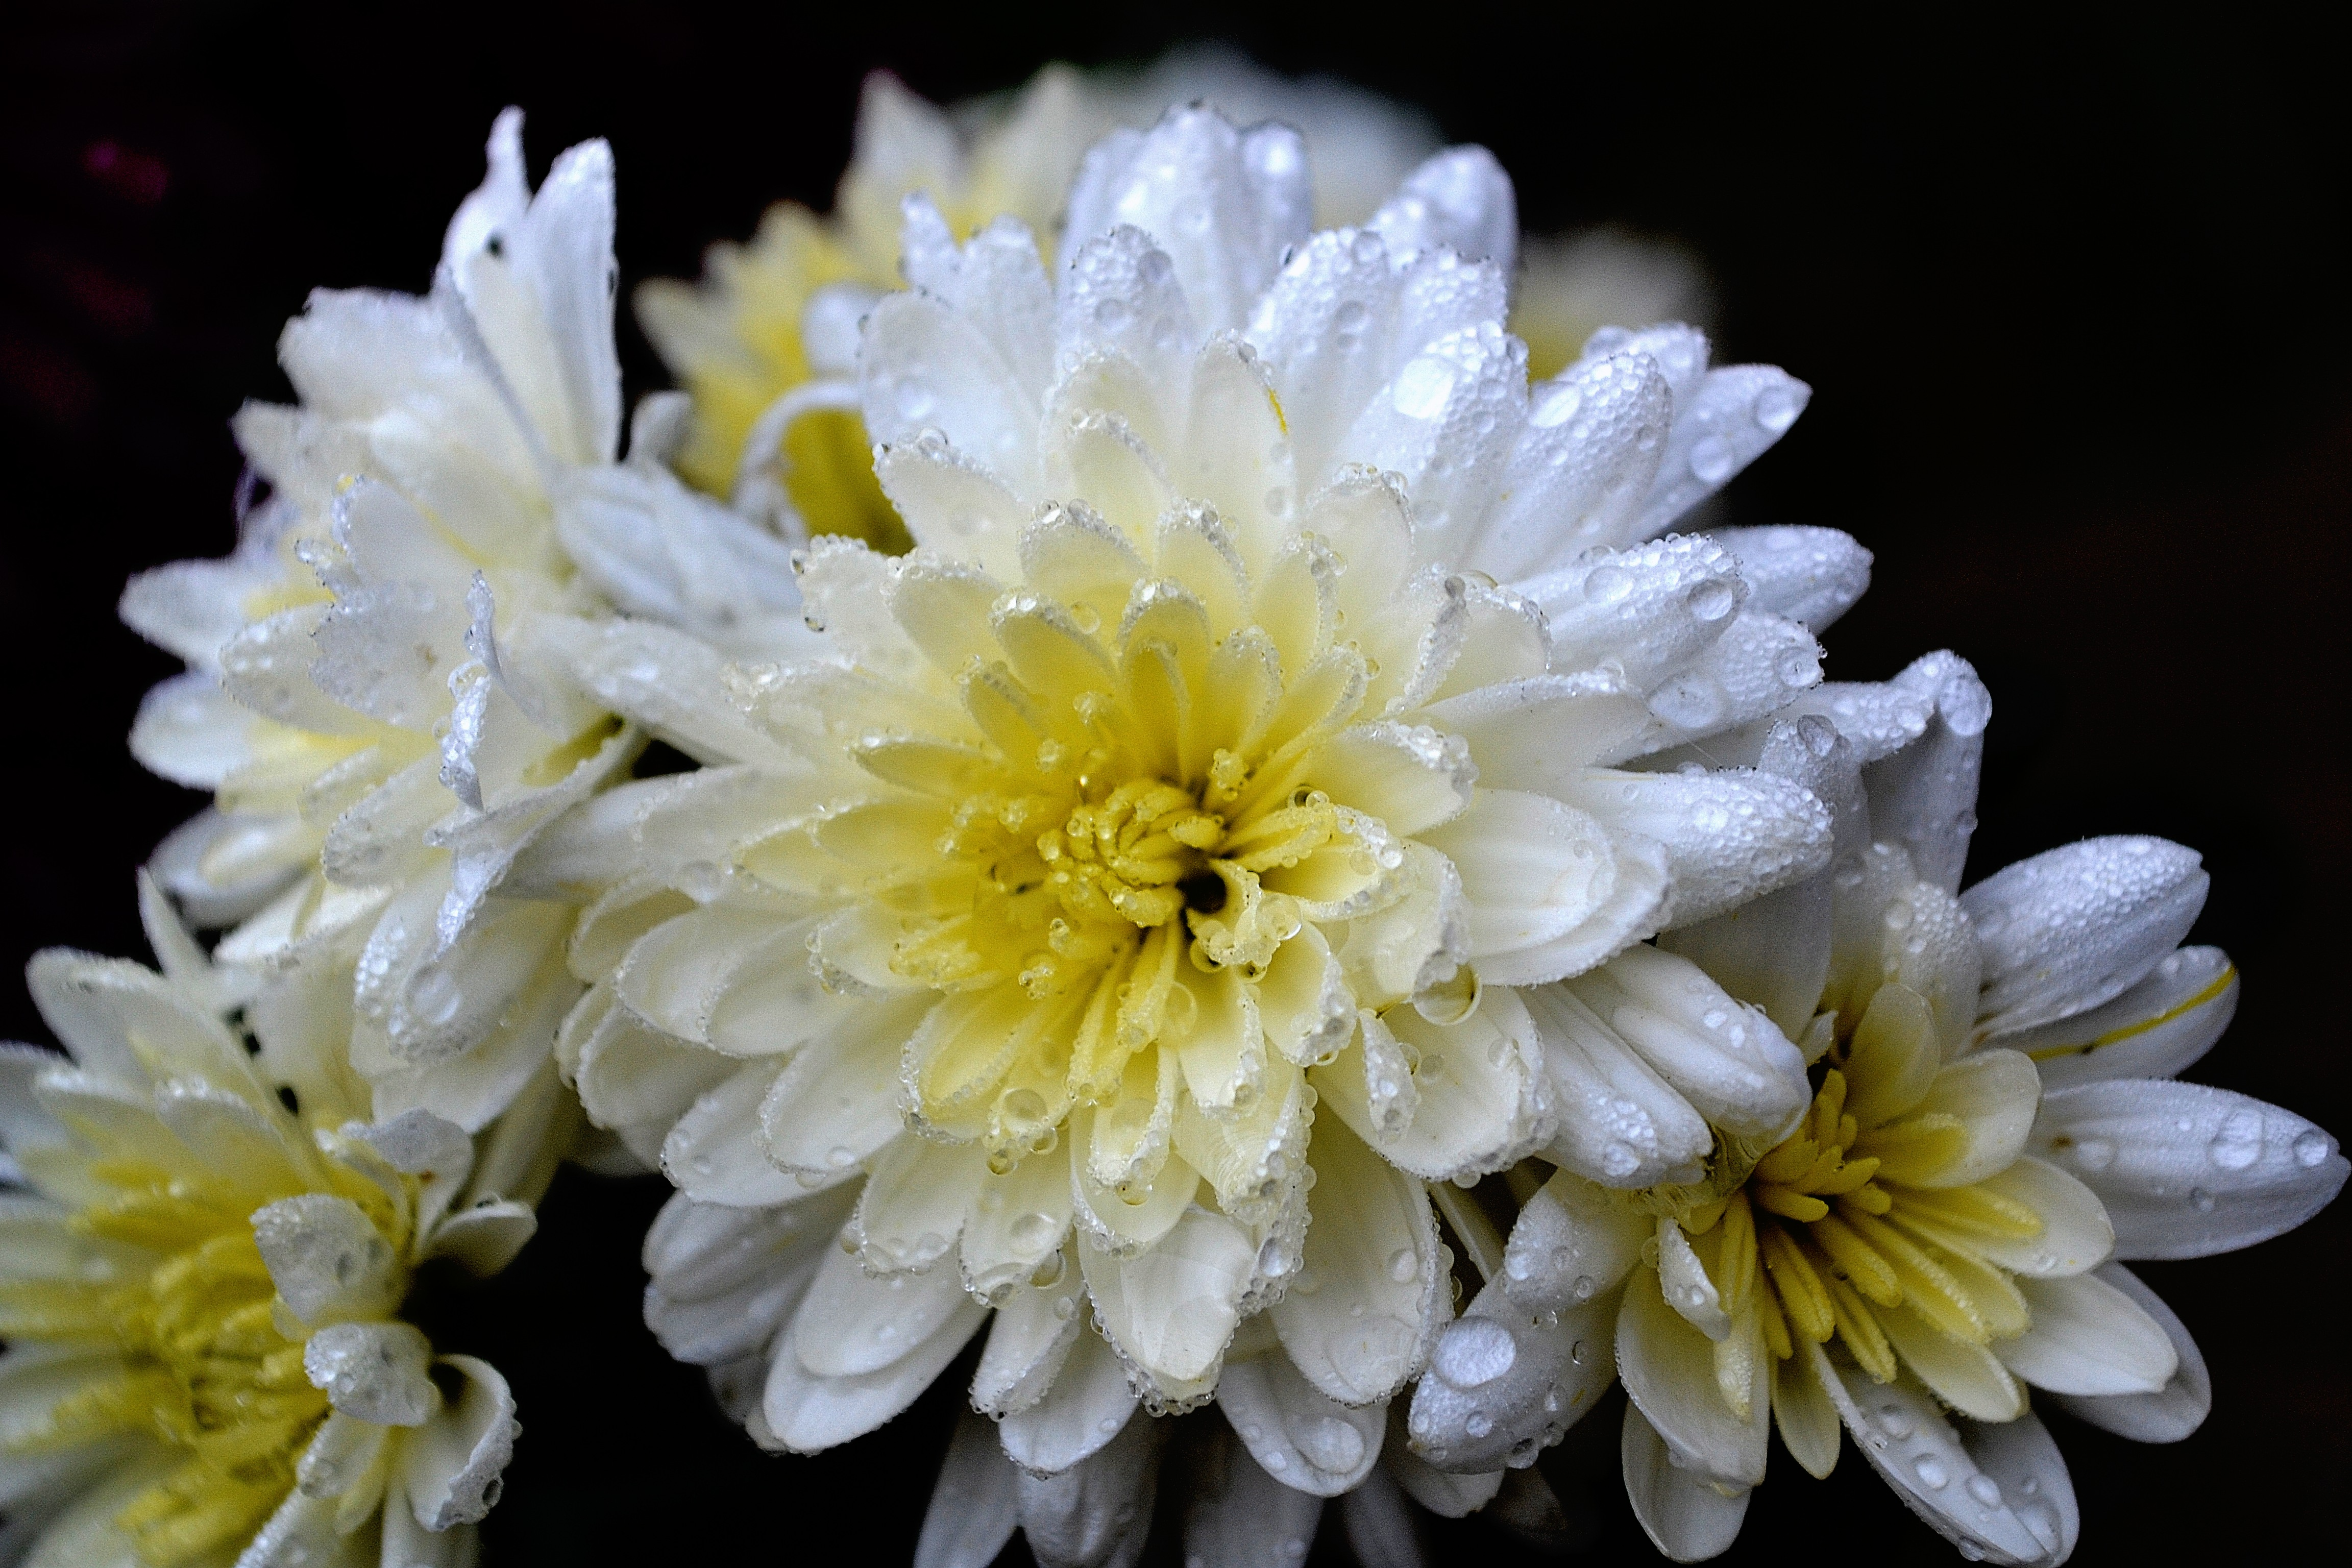 Frosted Flowers October 19, 2014